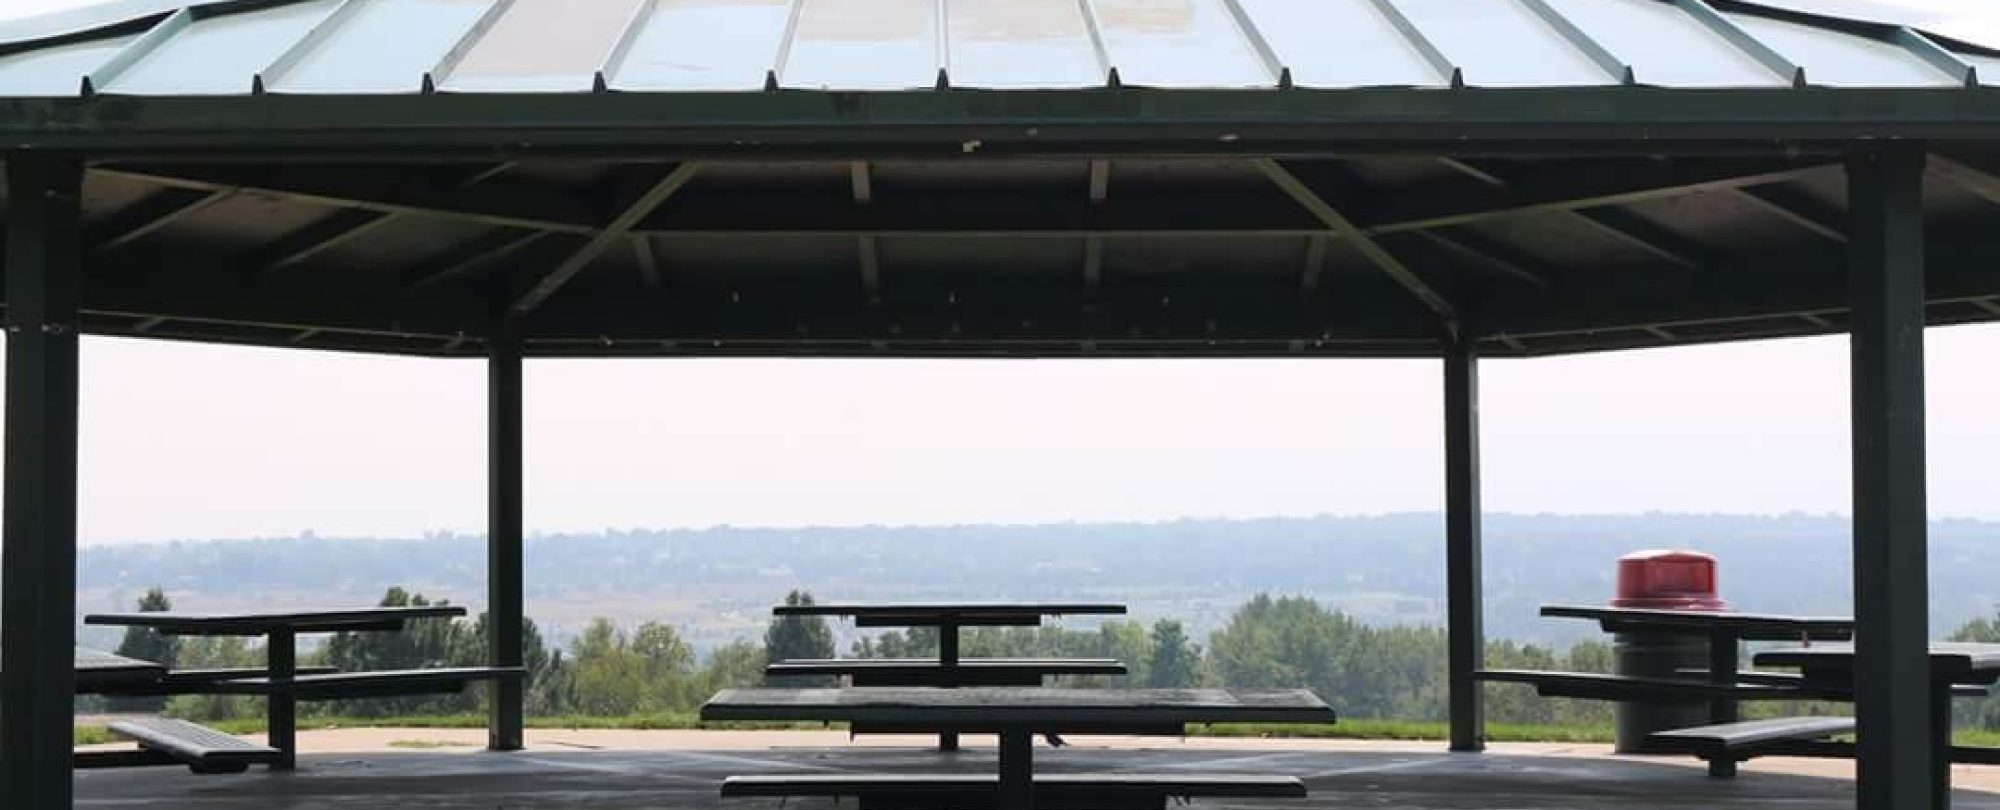 image of a roofed public picnic area